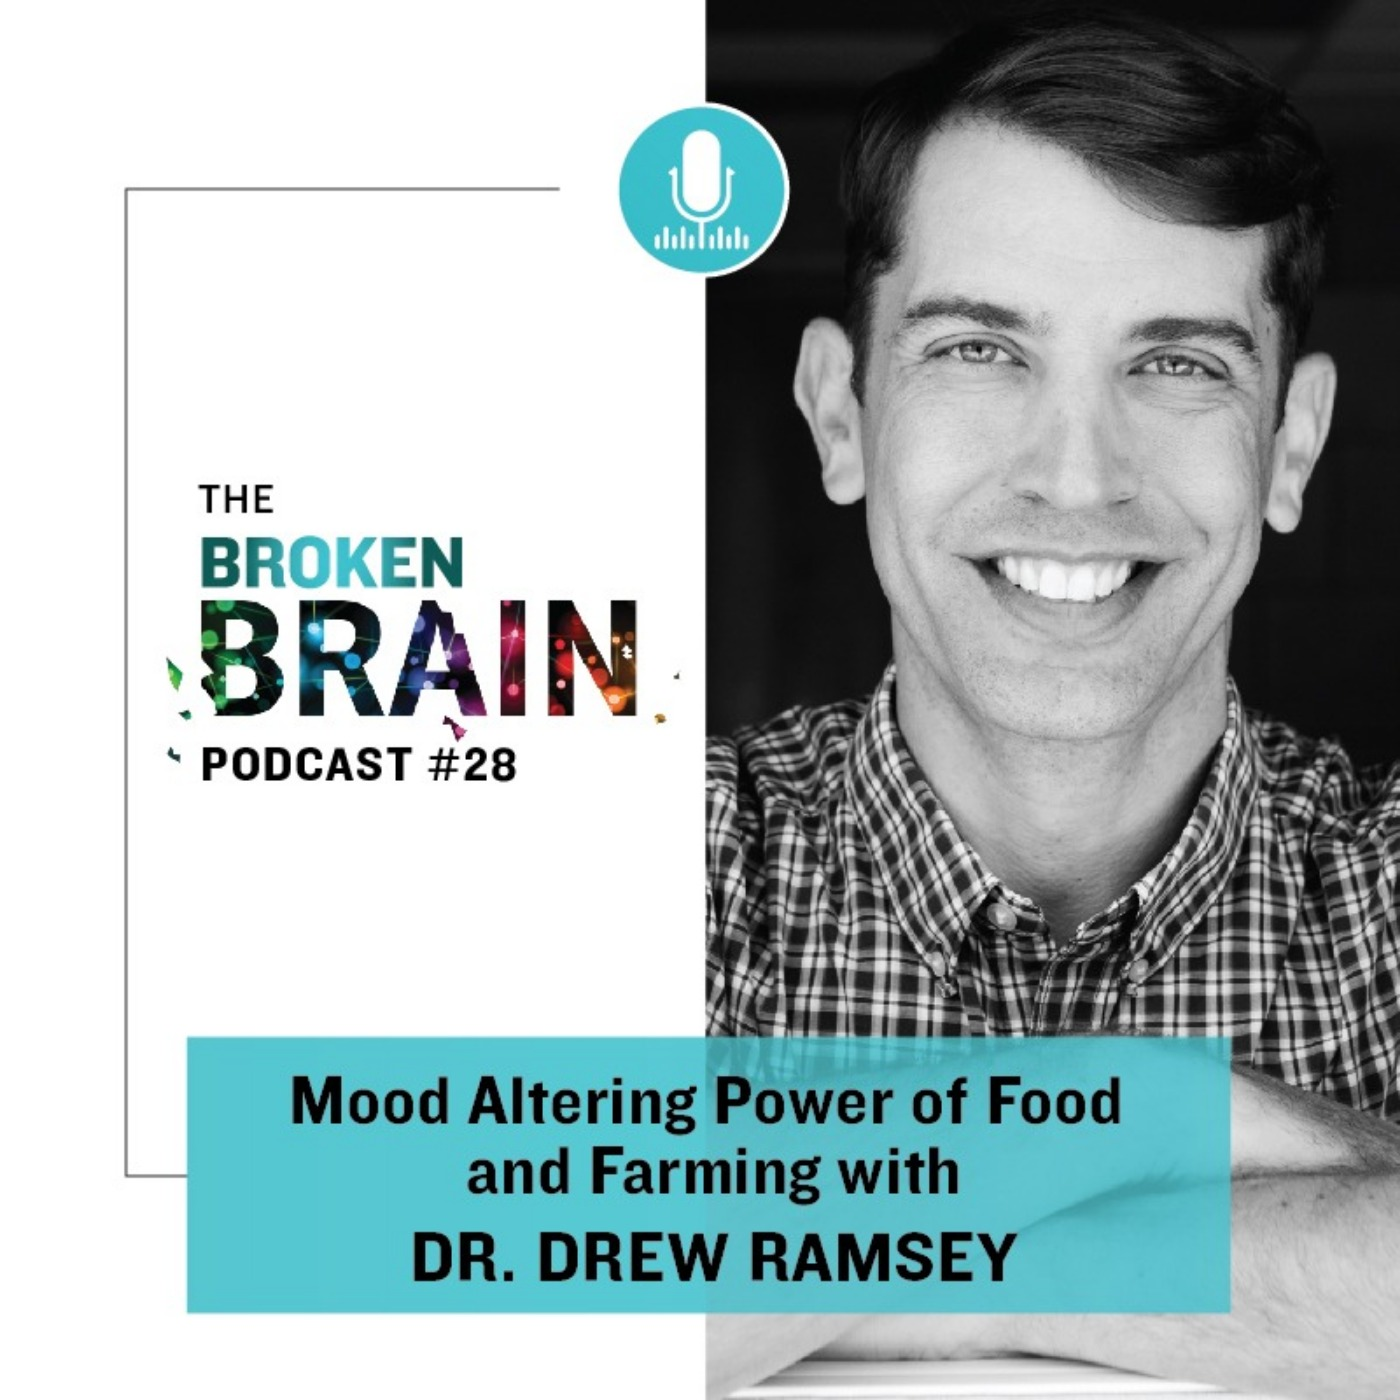 #28: Mood Altering Power of Food and Farming with Dr. Drew Ramsey